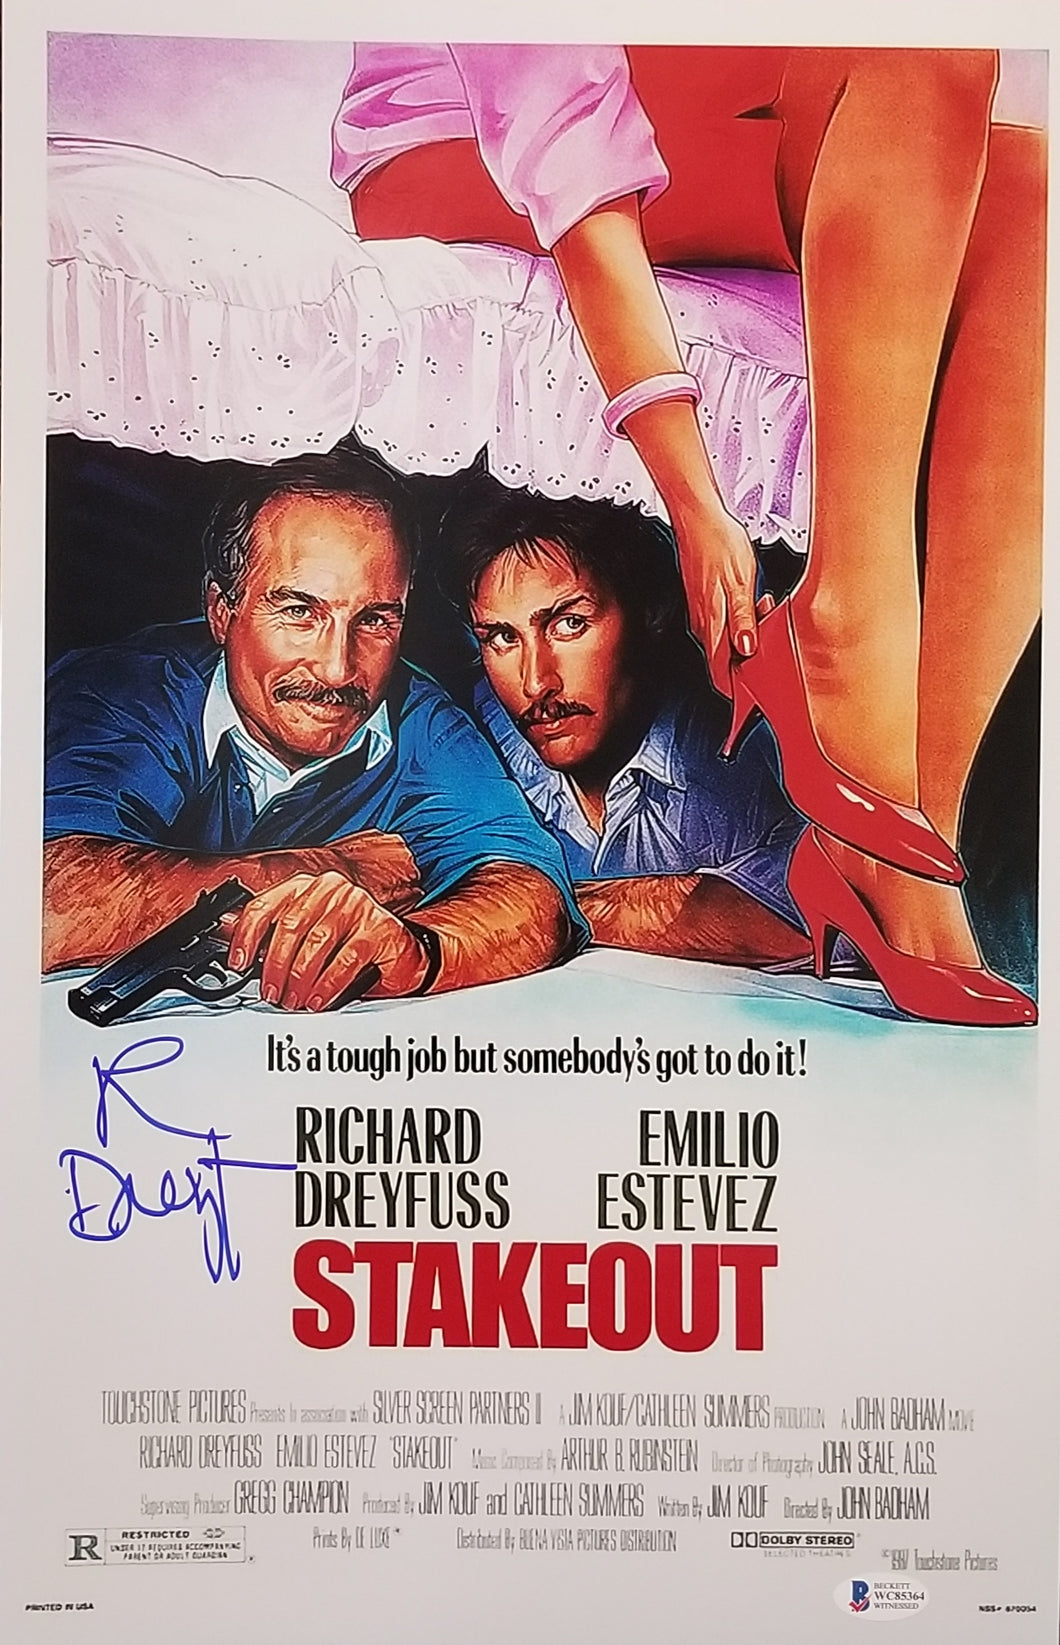 Richard Dreyfuss - Signed Stakeout 11x17 Mini Poster